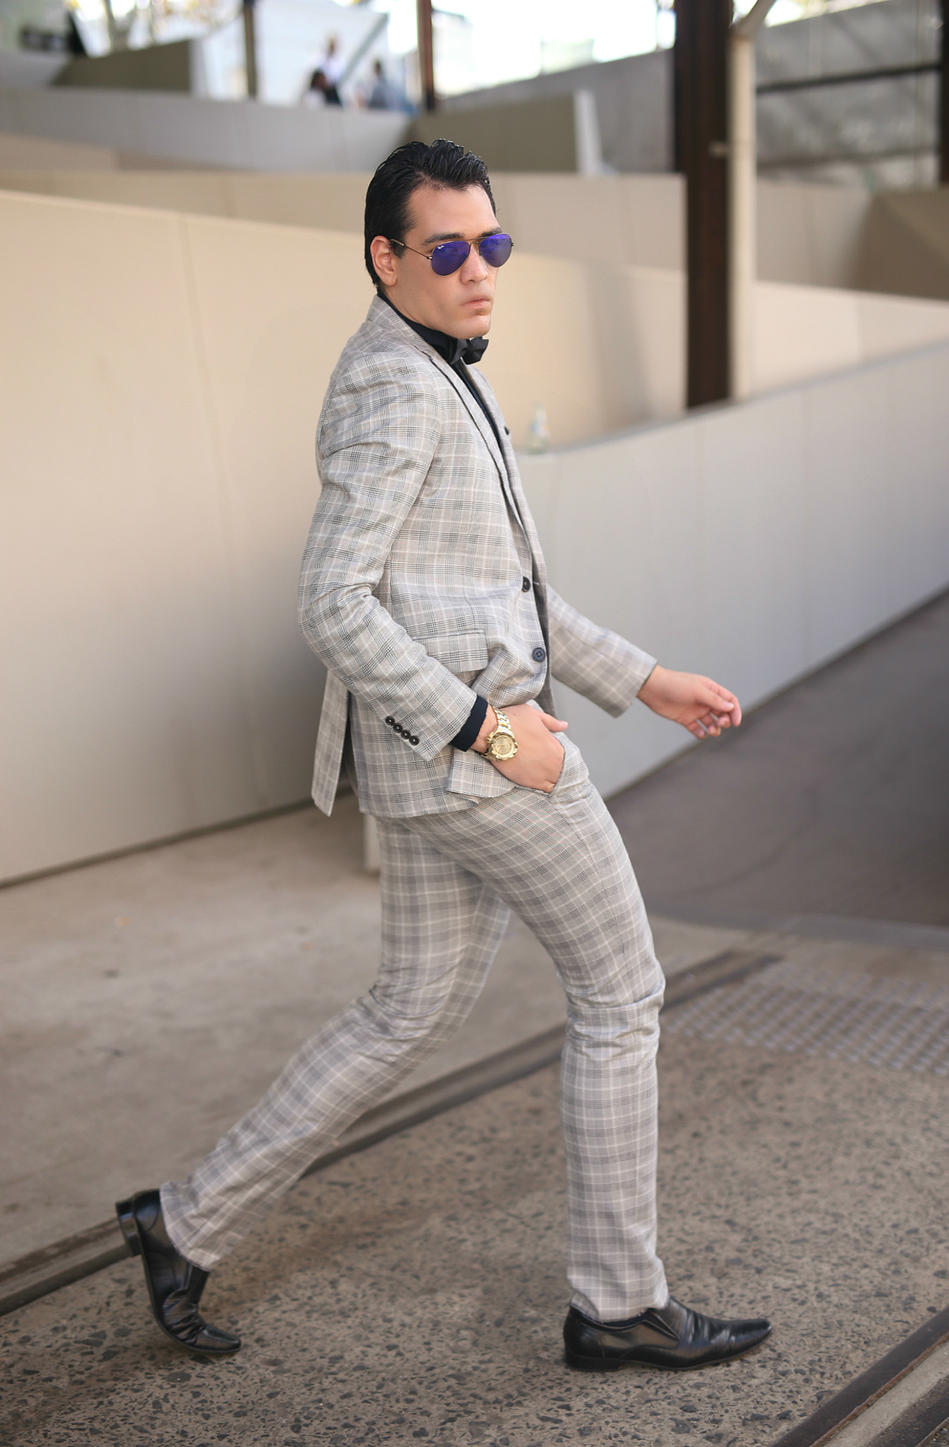 """Dress to be the best version of yourself not the second rate version of someone else."" Warren A Pasi- Stylist, Model and Content Creator. Warren wears Armani shirt and suit, Julius Marlow shoes and accessorised with watch by Karl Lagerfeld and sunglasses from Ray ban."